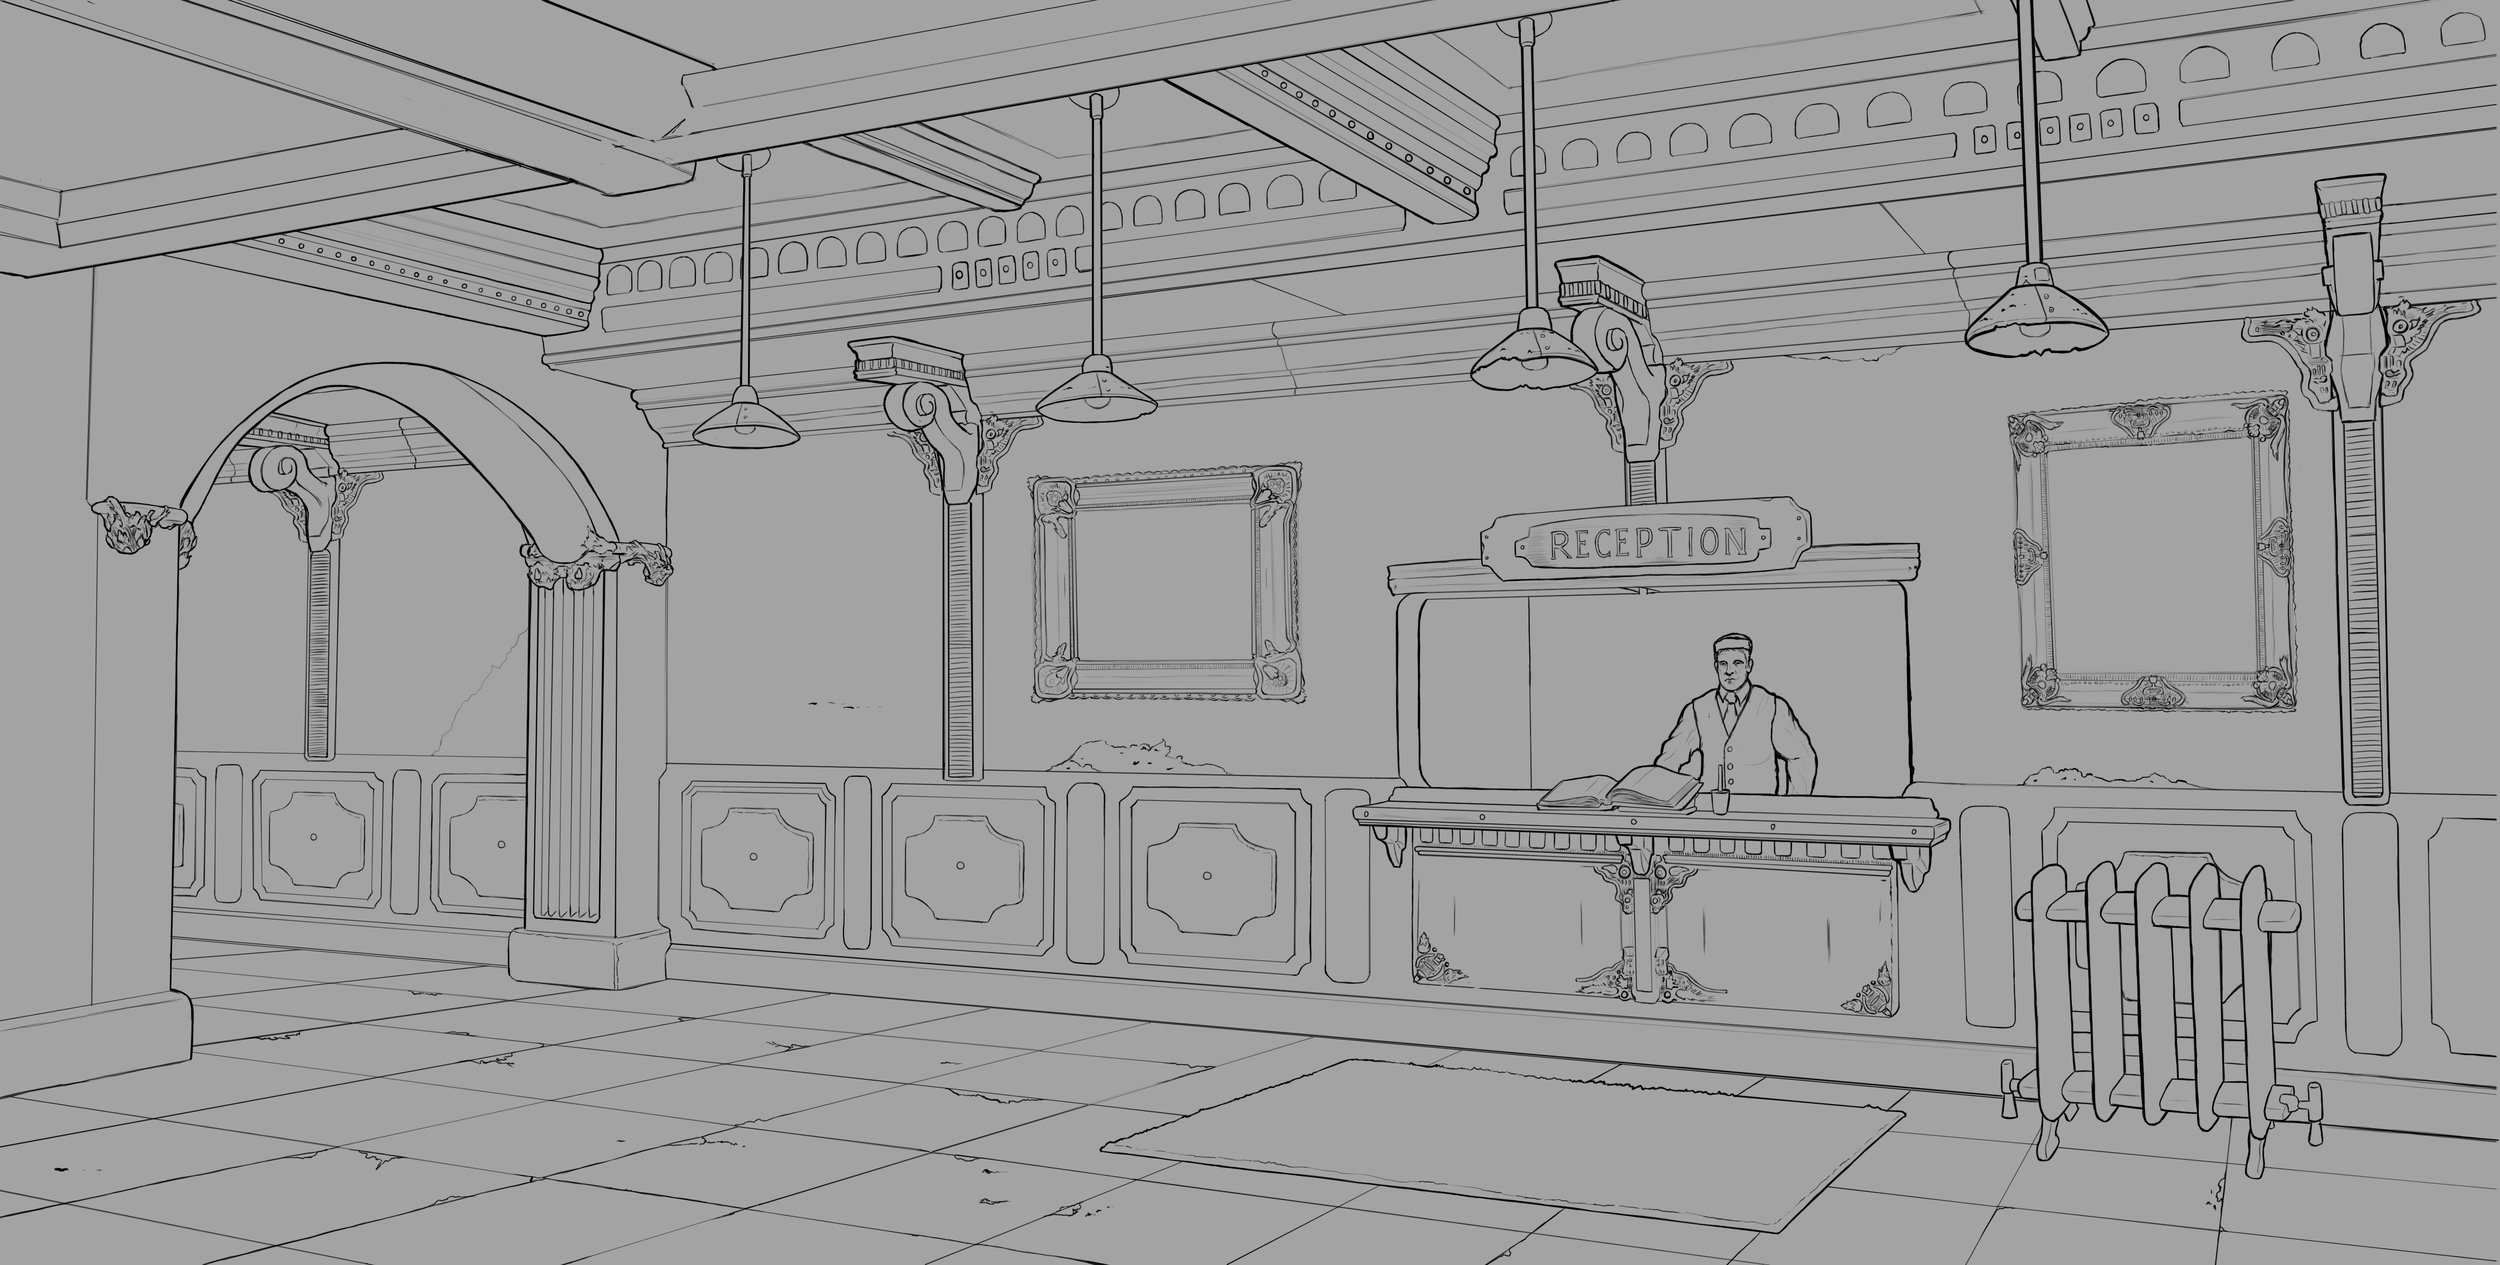 James_Chao_Hotel_Sketch